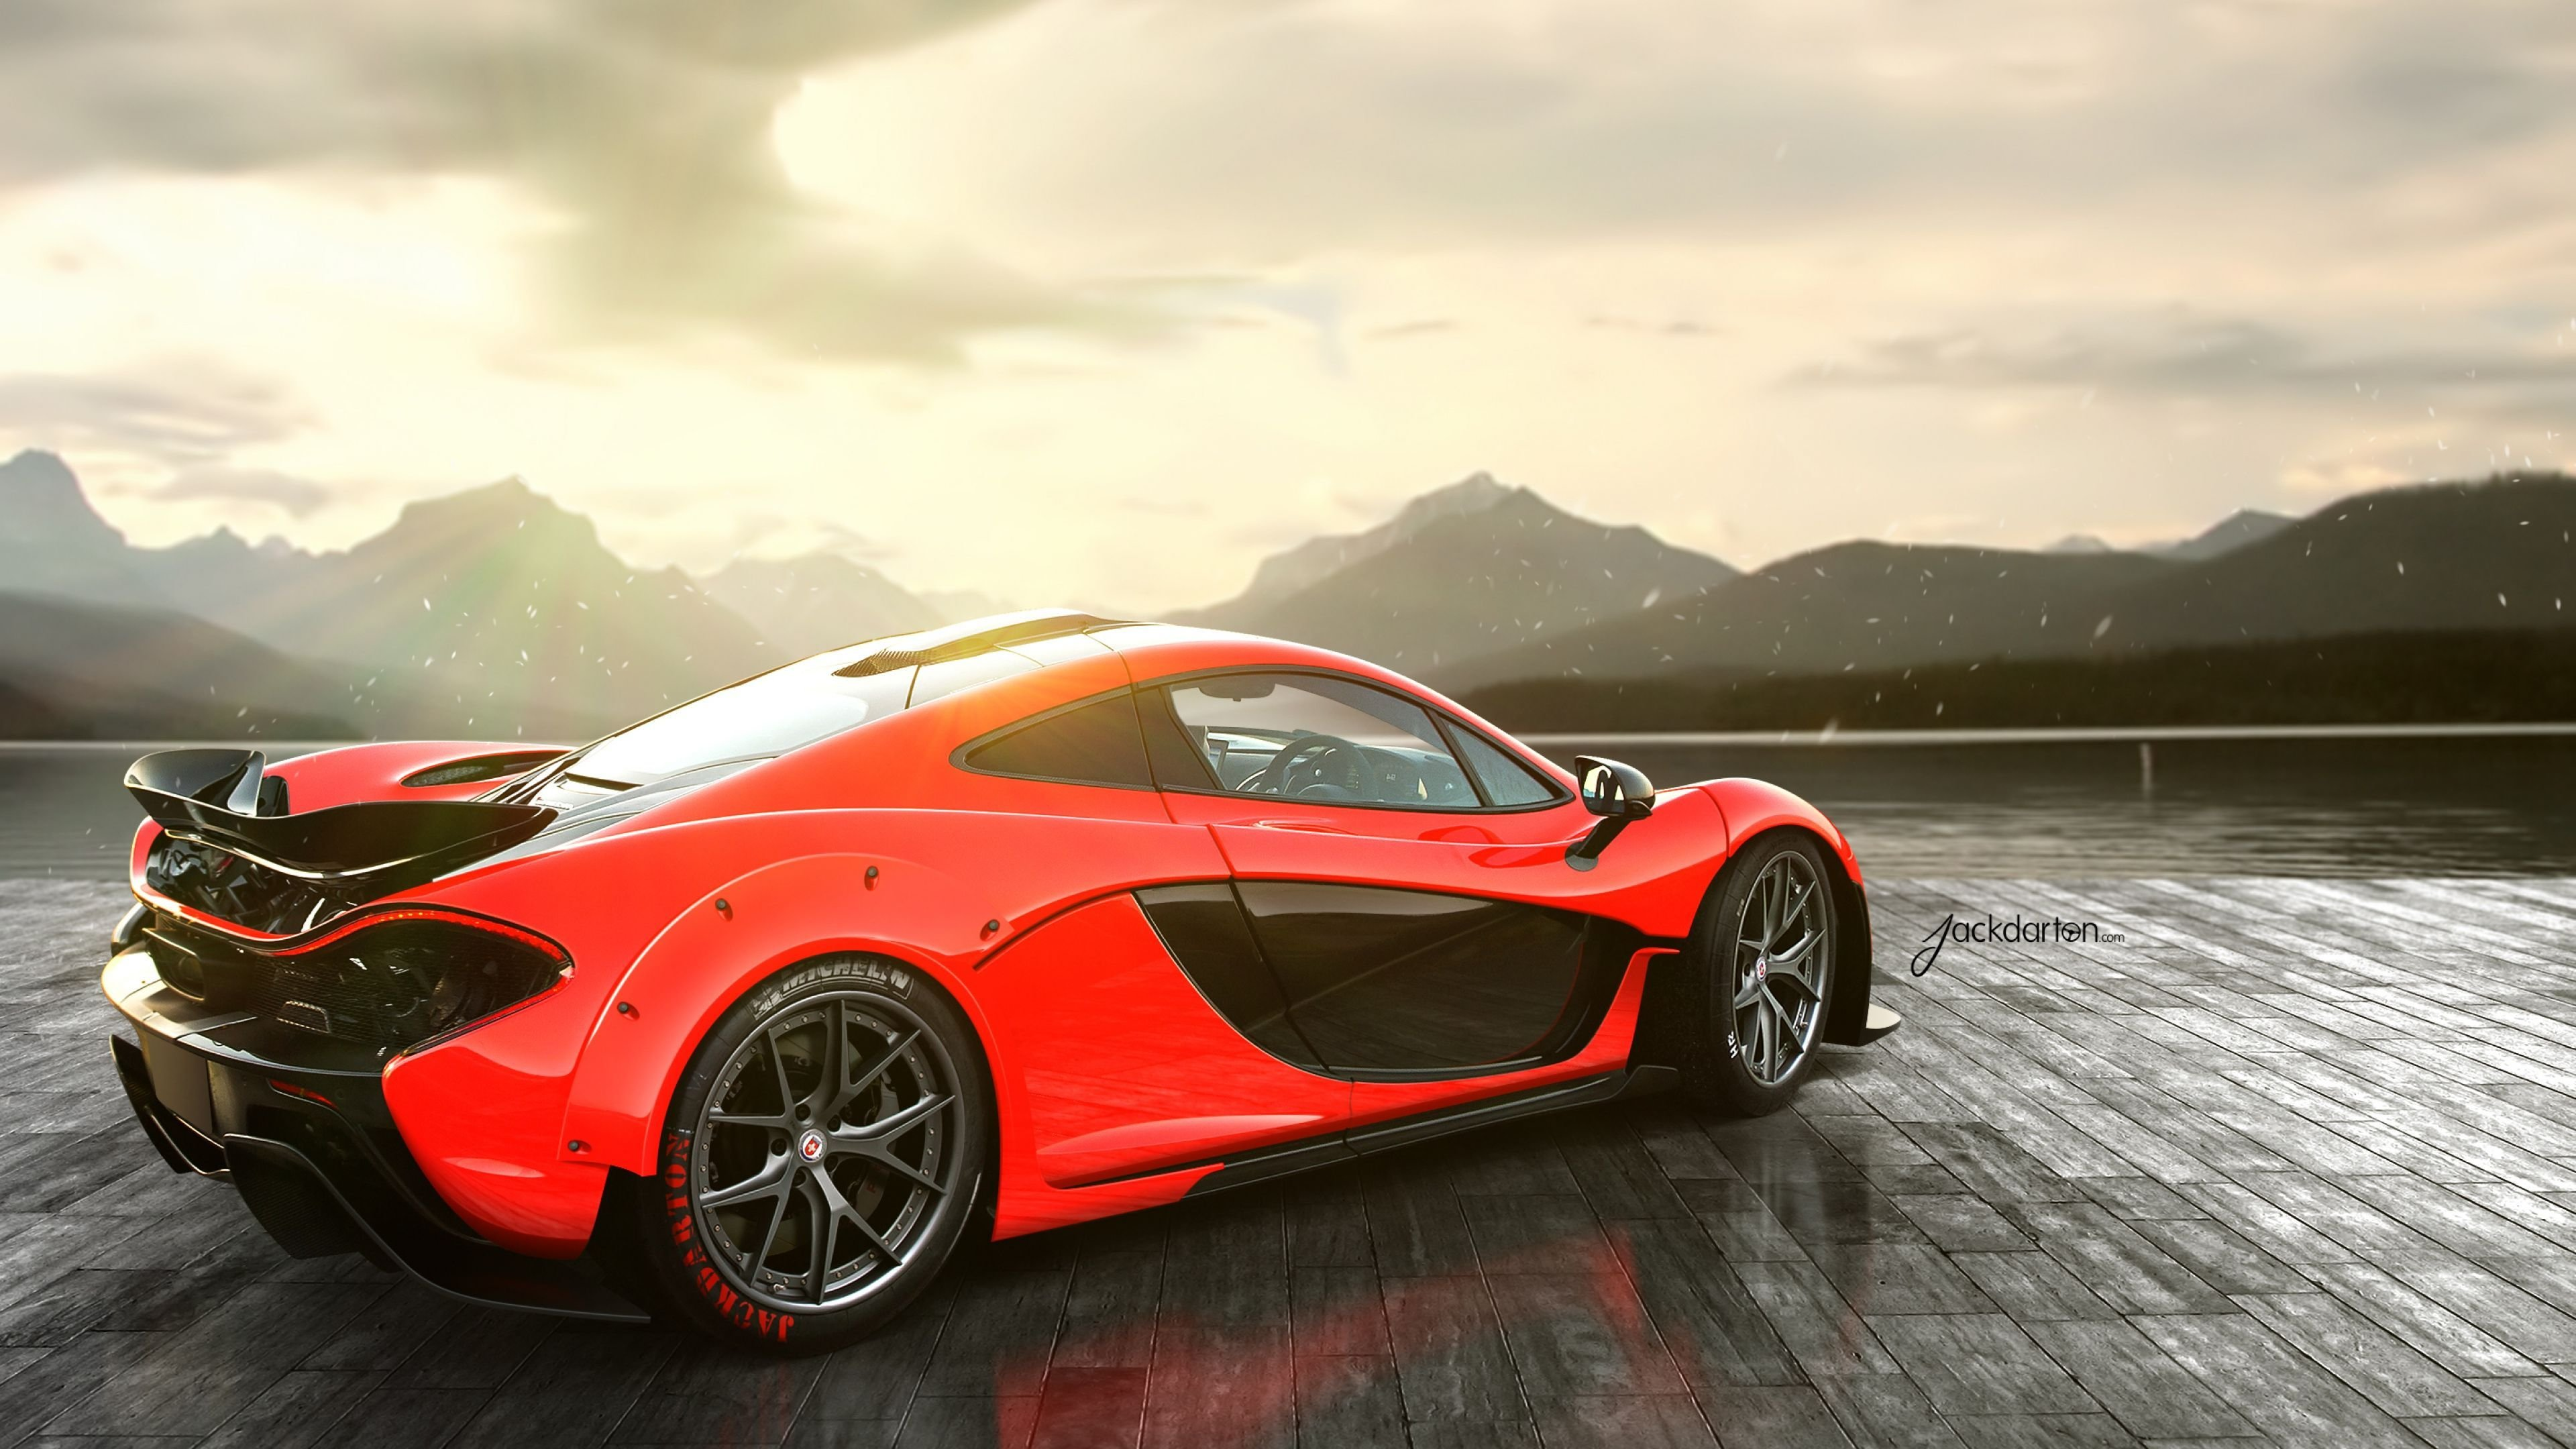 Latest Mclaren P1 Wallpaper Desktop Background Oi4 Cars Free Download